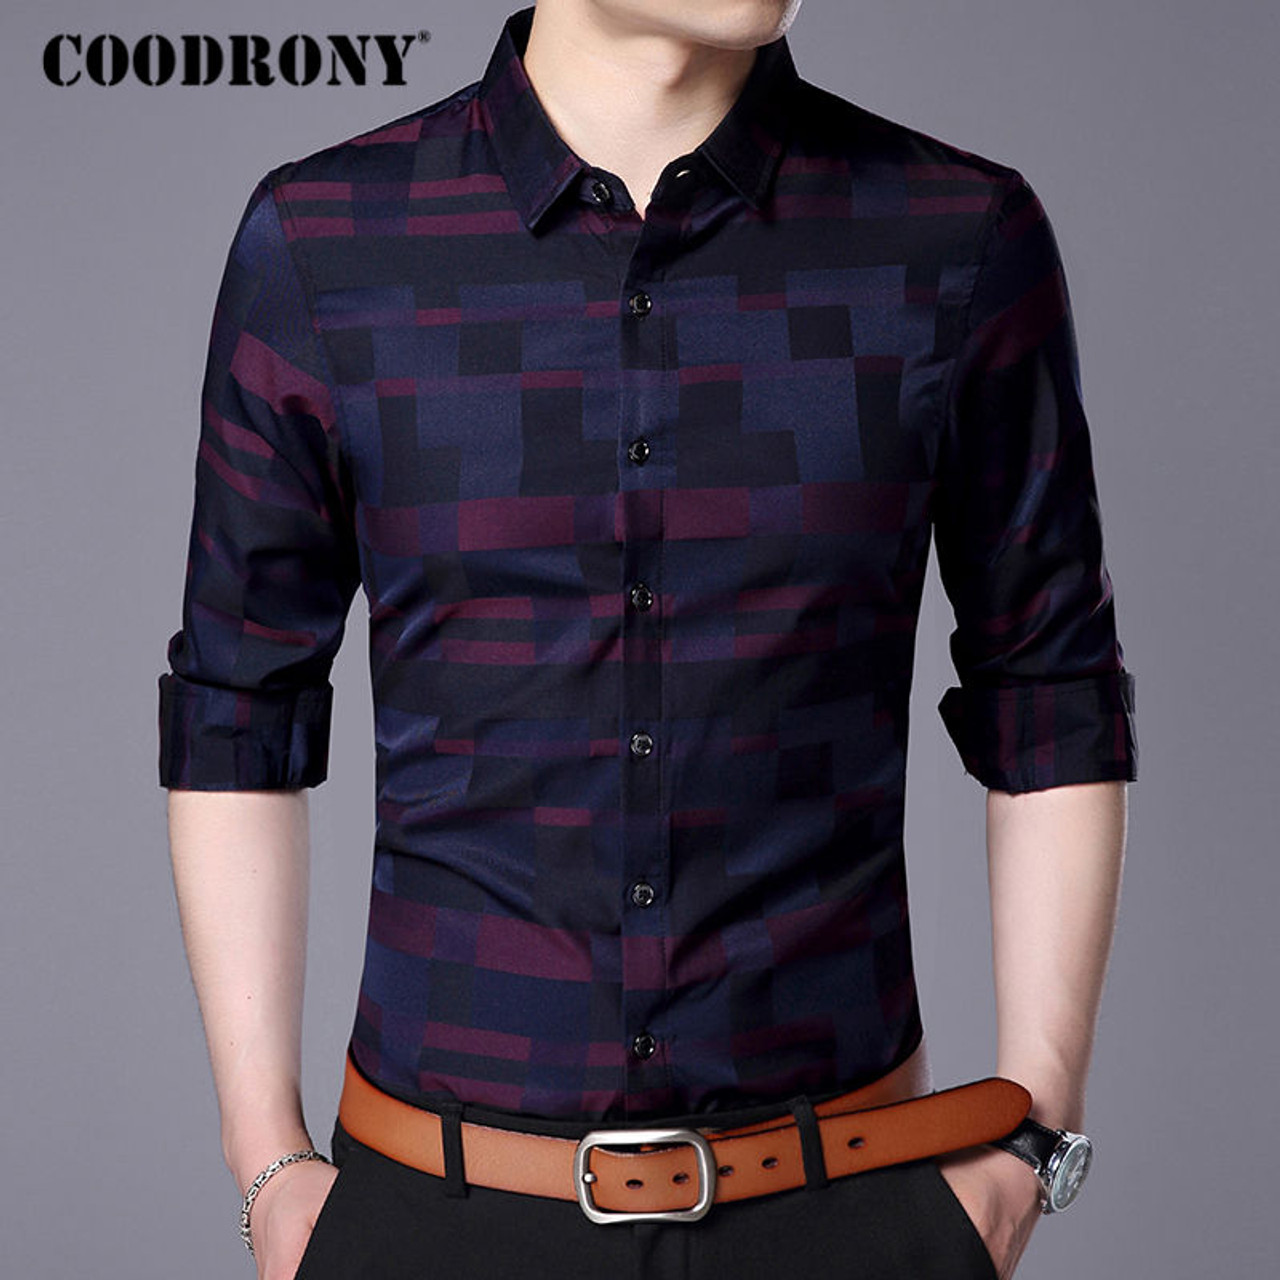 596f421698dc ... COODRONY Men Shirt Mens Business Casual Shirts 2017 New Arrival Men  Famous Brand Clothing Plaid Long ...